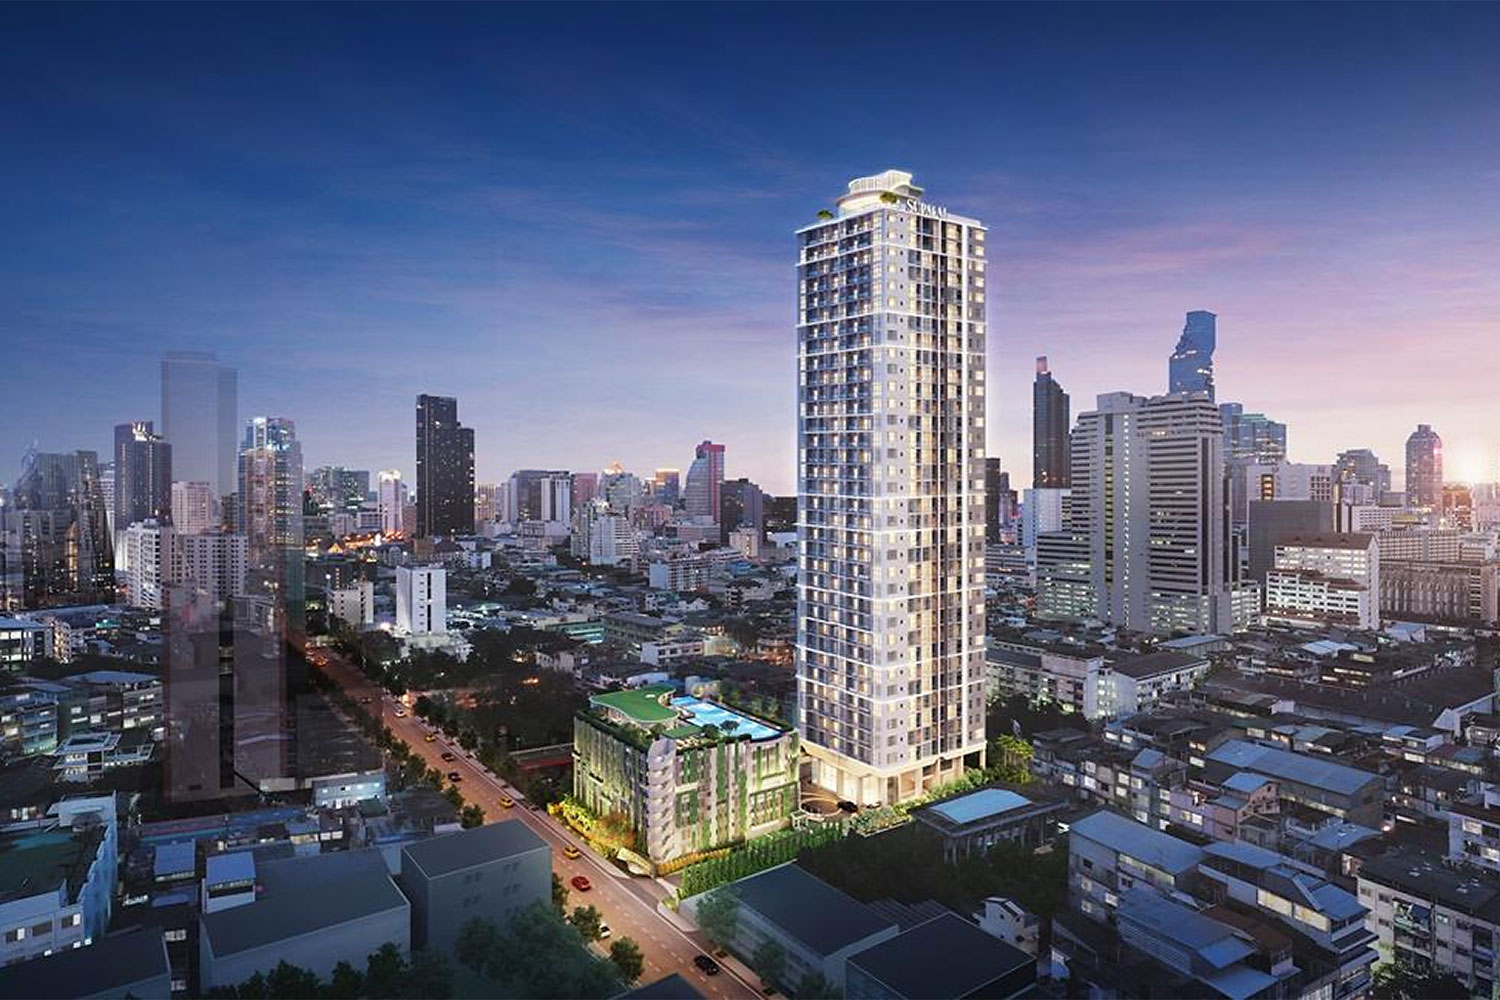 A digital rendition of Supalai Premier Siphraya-Samyan, a condo project with 384 units priced from 3.69 million baht.